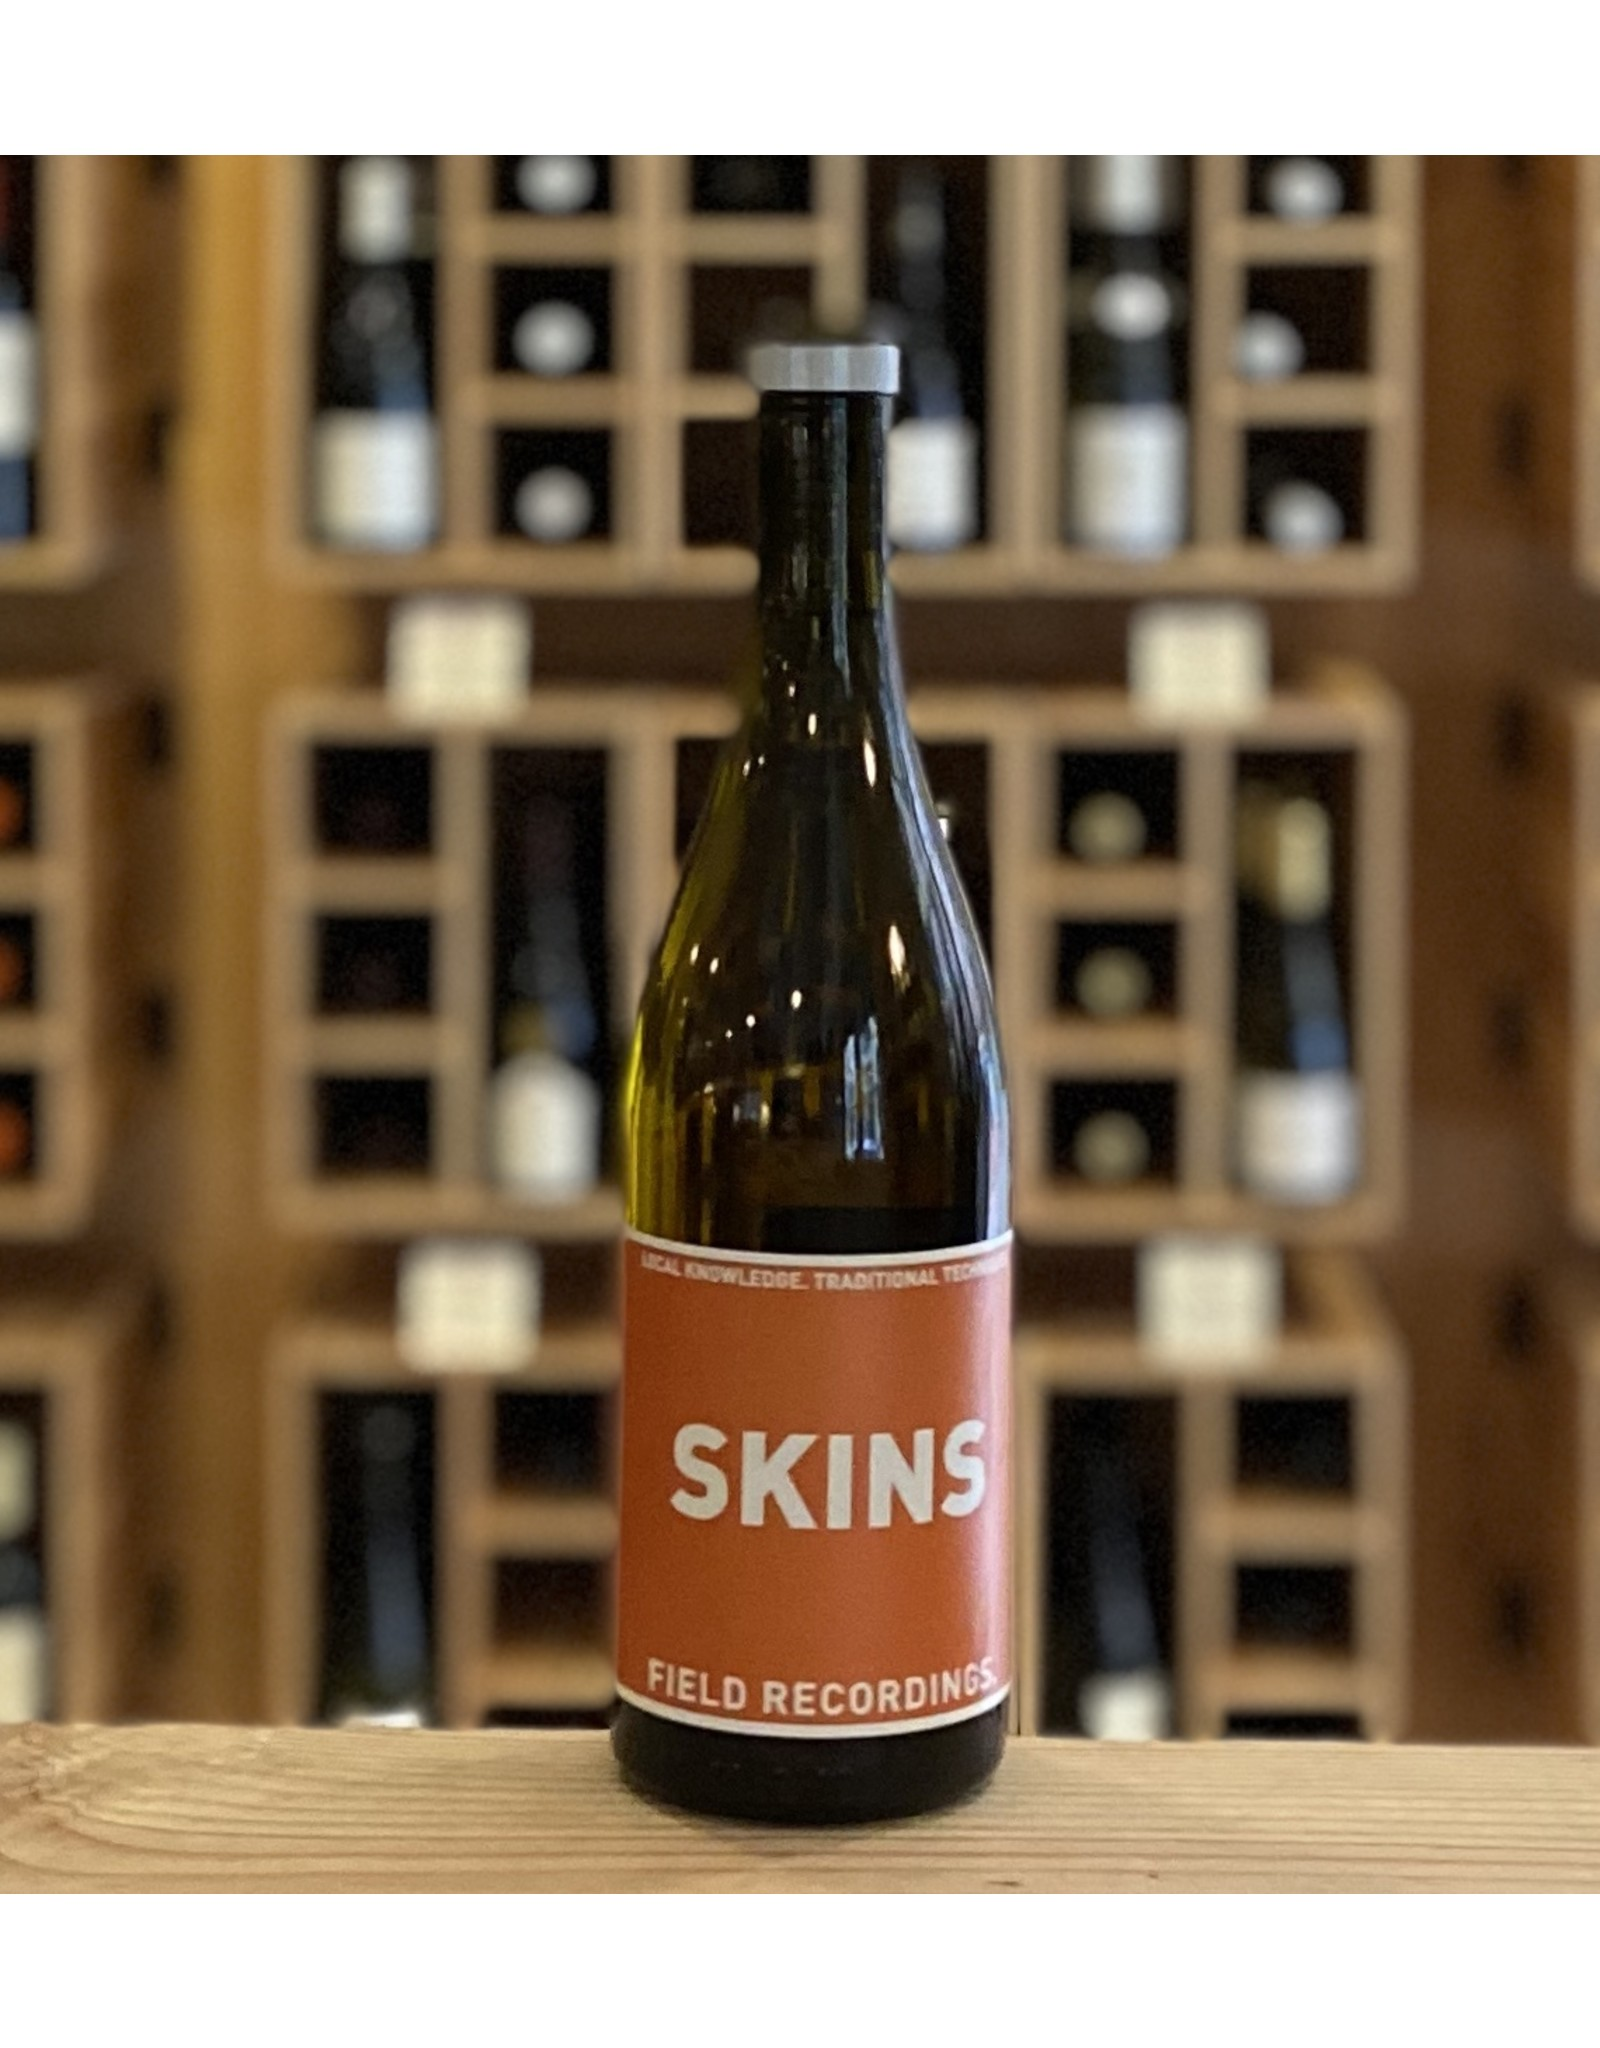 Vegan Field Recordings ''Skins'' White Blend 2020 - Central Coast, CA